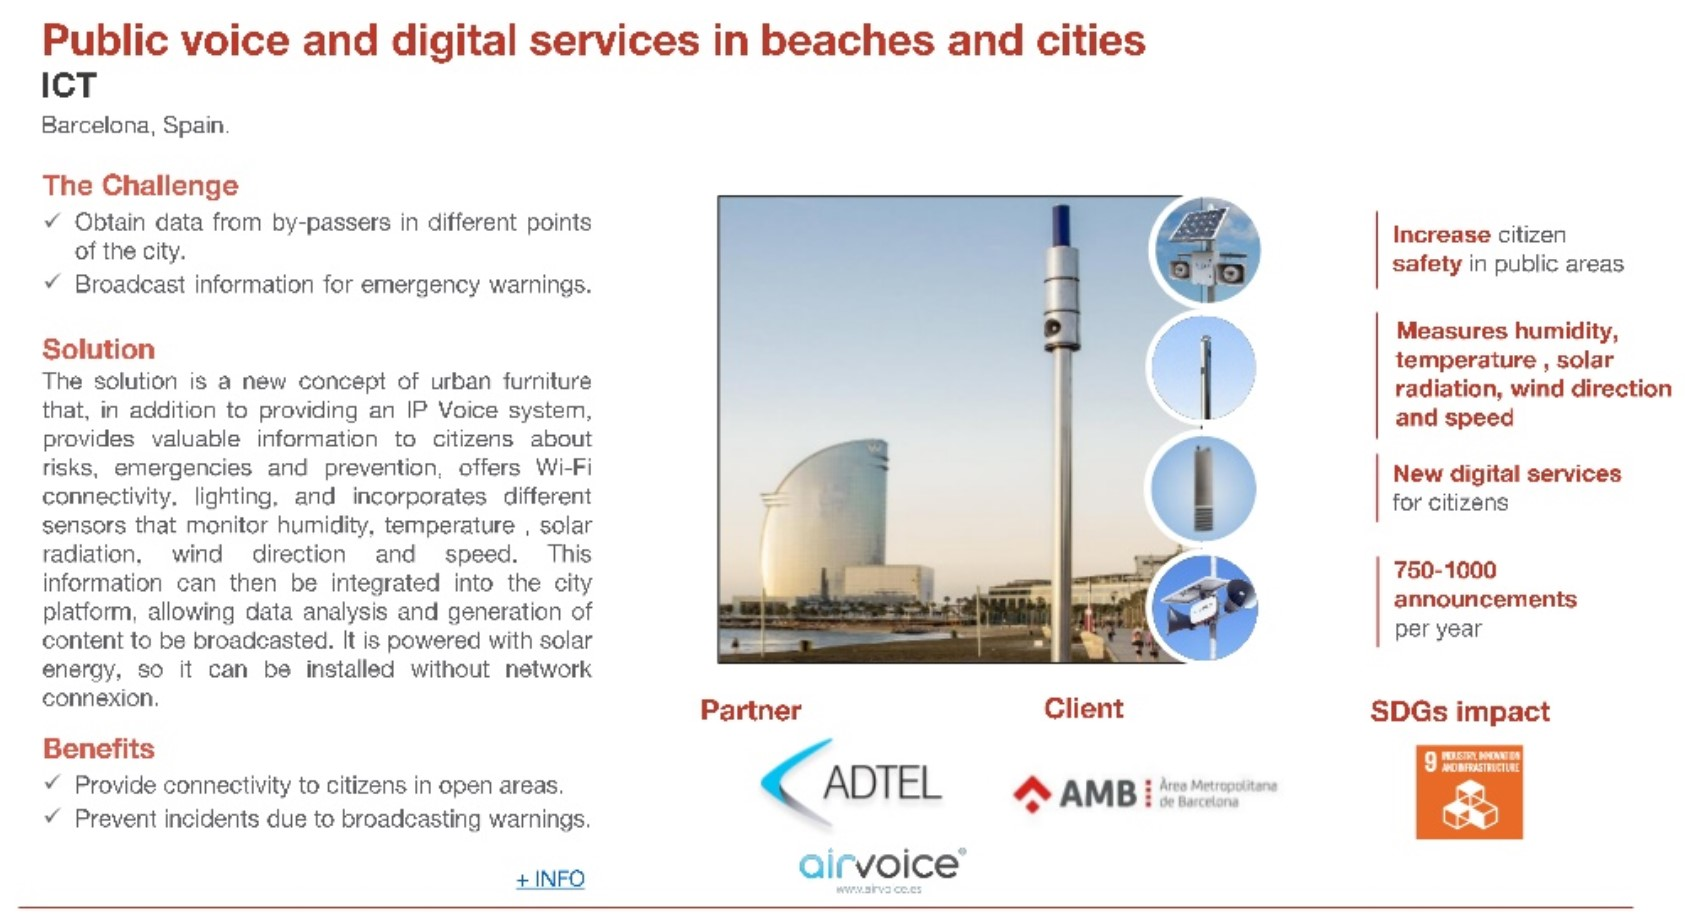 ACCIO talks about the AirVoice public addres wireless solution that covers the Barcelona coast